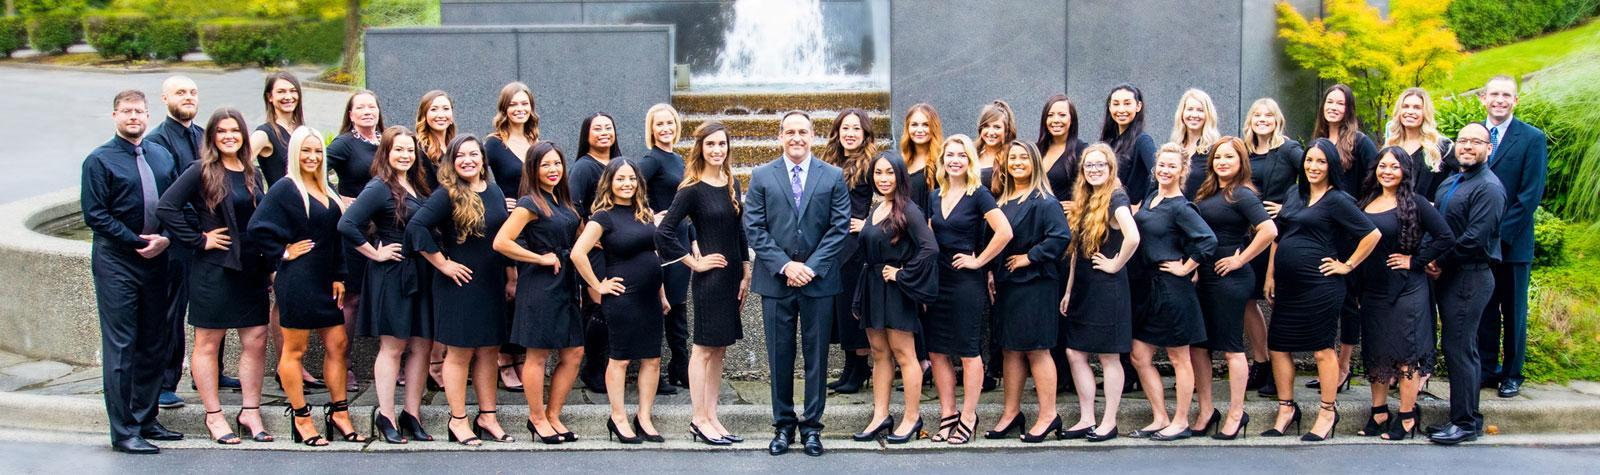 Meet The Gallery of Cosmetic Surgery Team